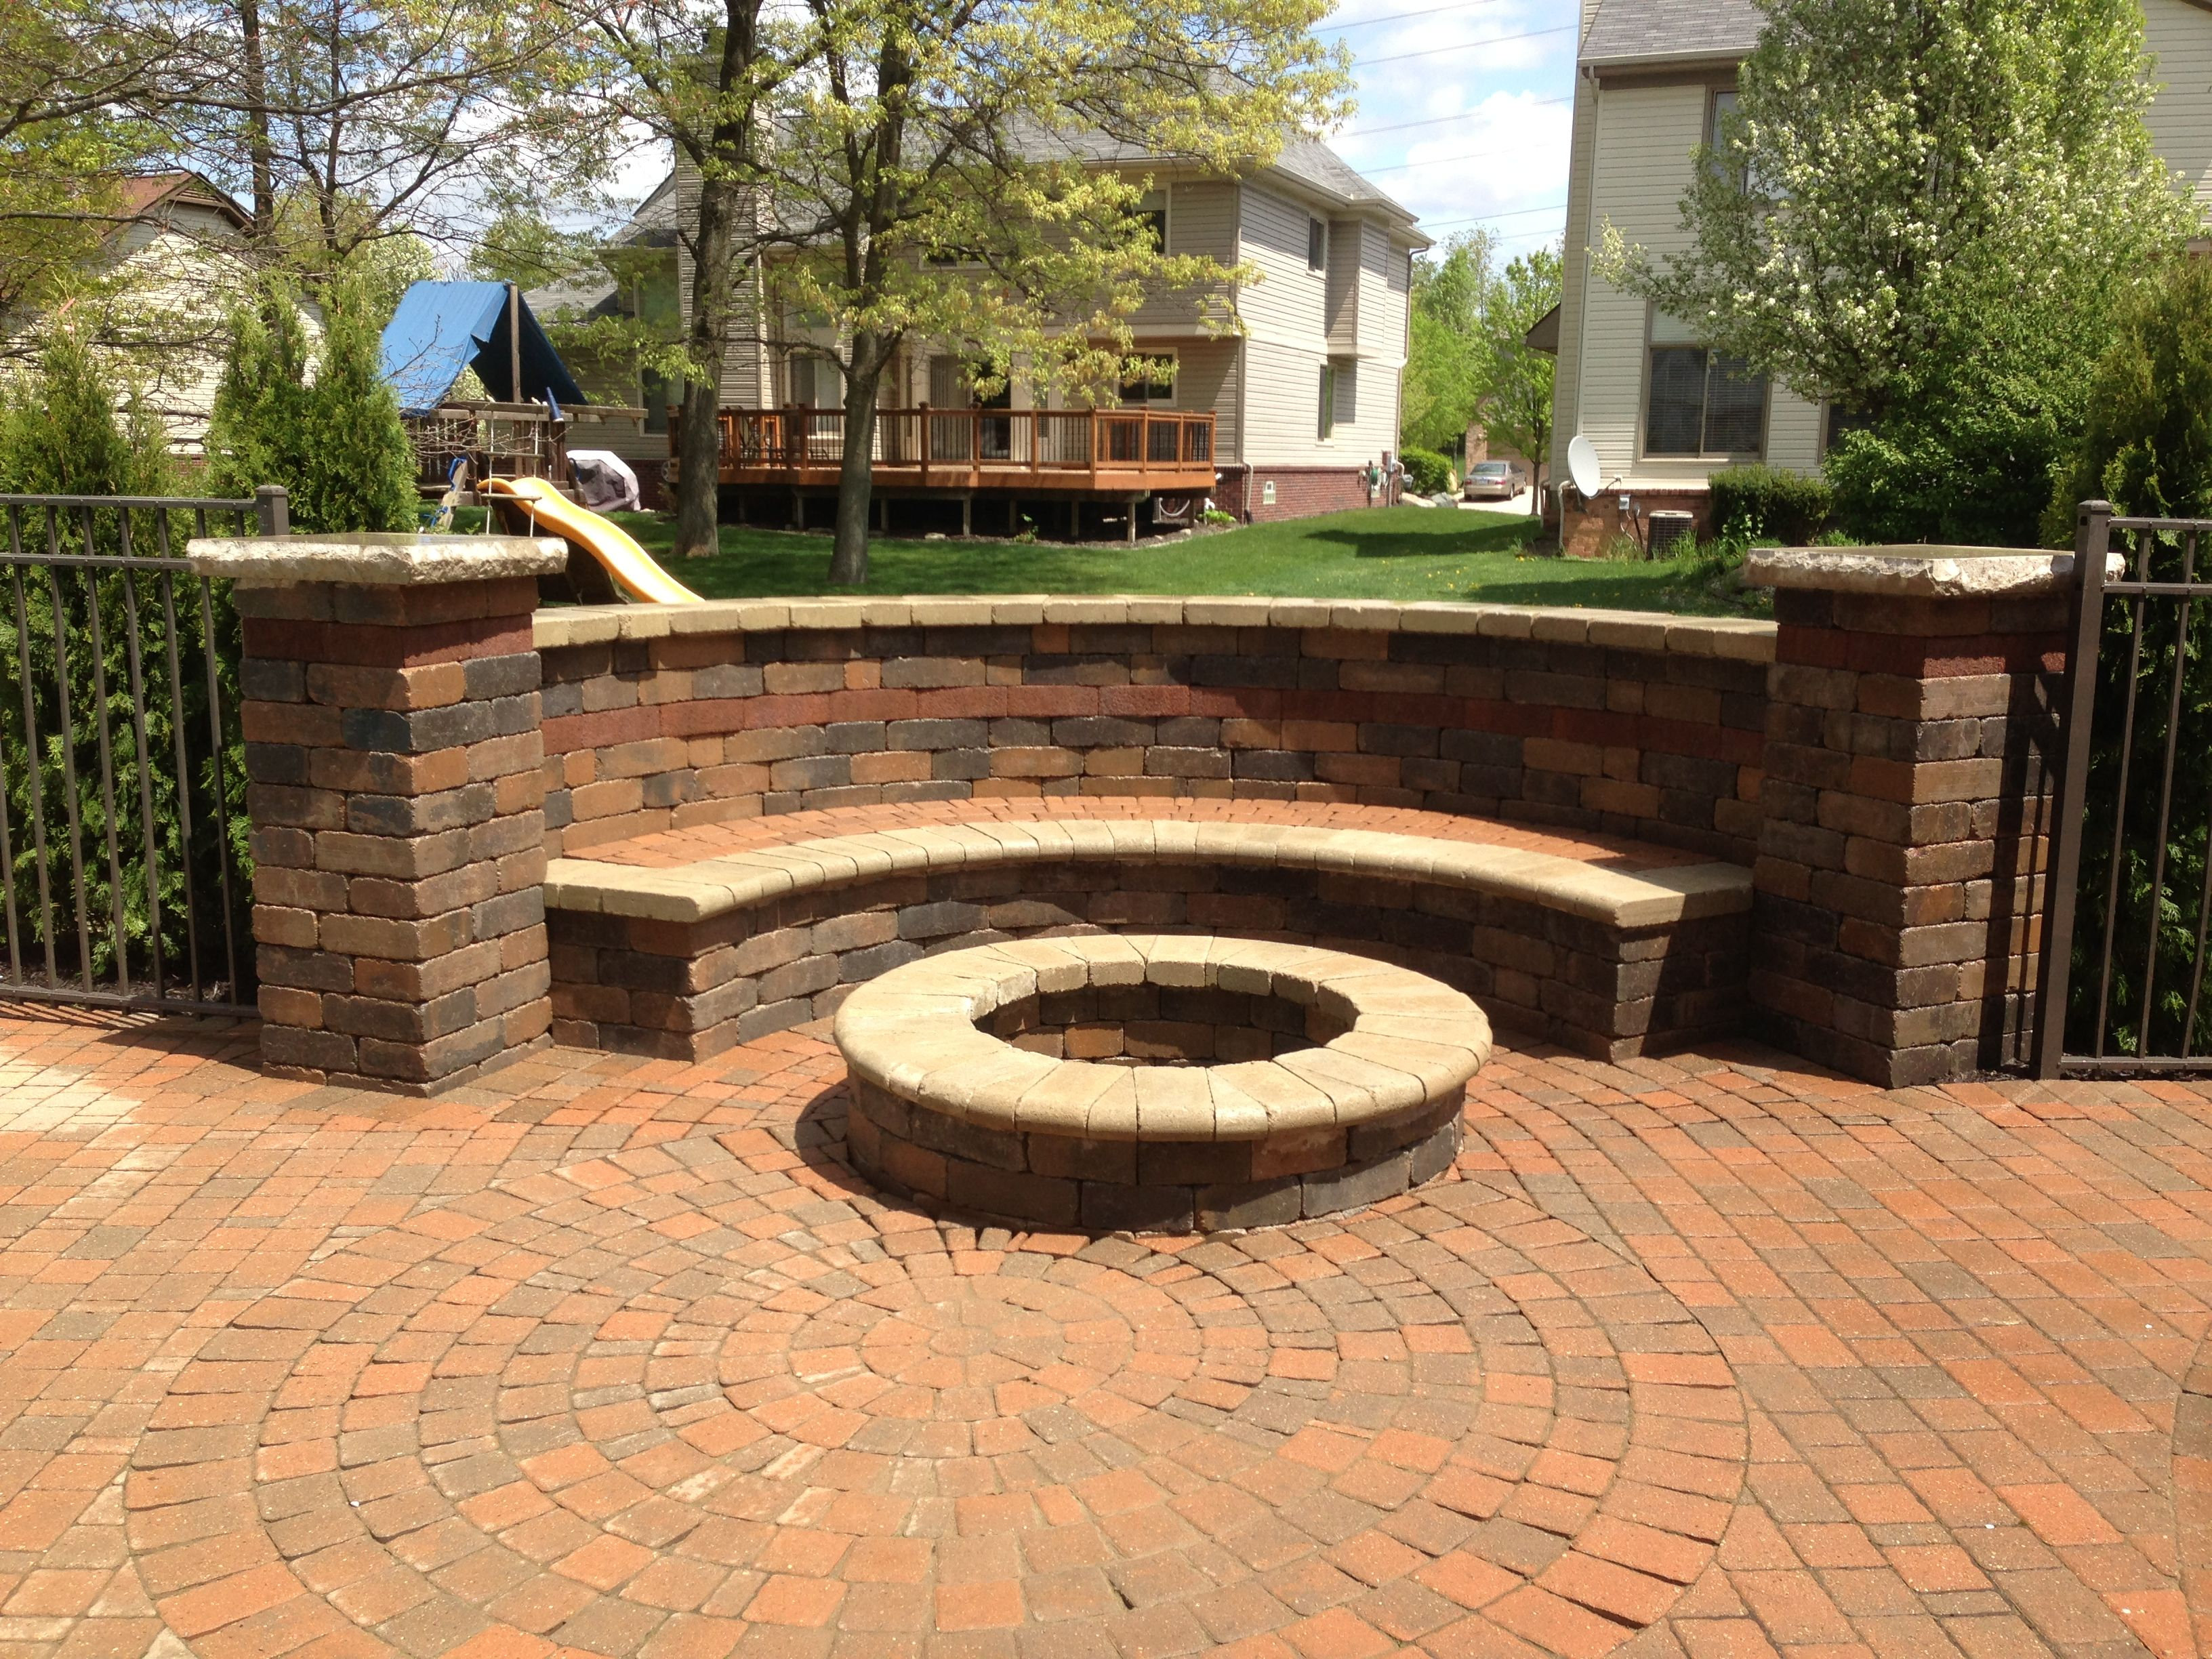 Brick paver bench with fire-pit. Beautiful tumble retaining wall. By on home backyard ideas, brick paver fire pit, brick retaining wall backyard ideas, brick paver landscaping, flagstone backyard ideas, used brick backyard ideas, masonry backyard ideas, concrete backyard ideas,